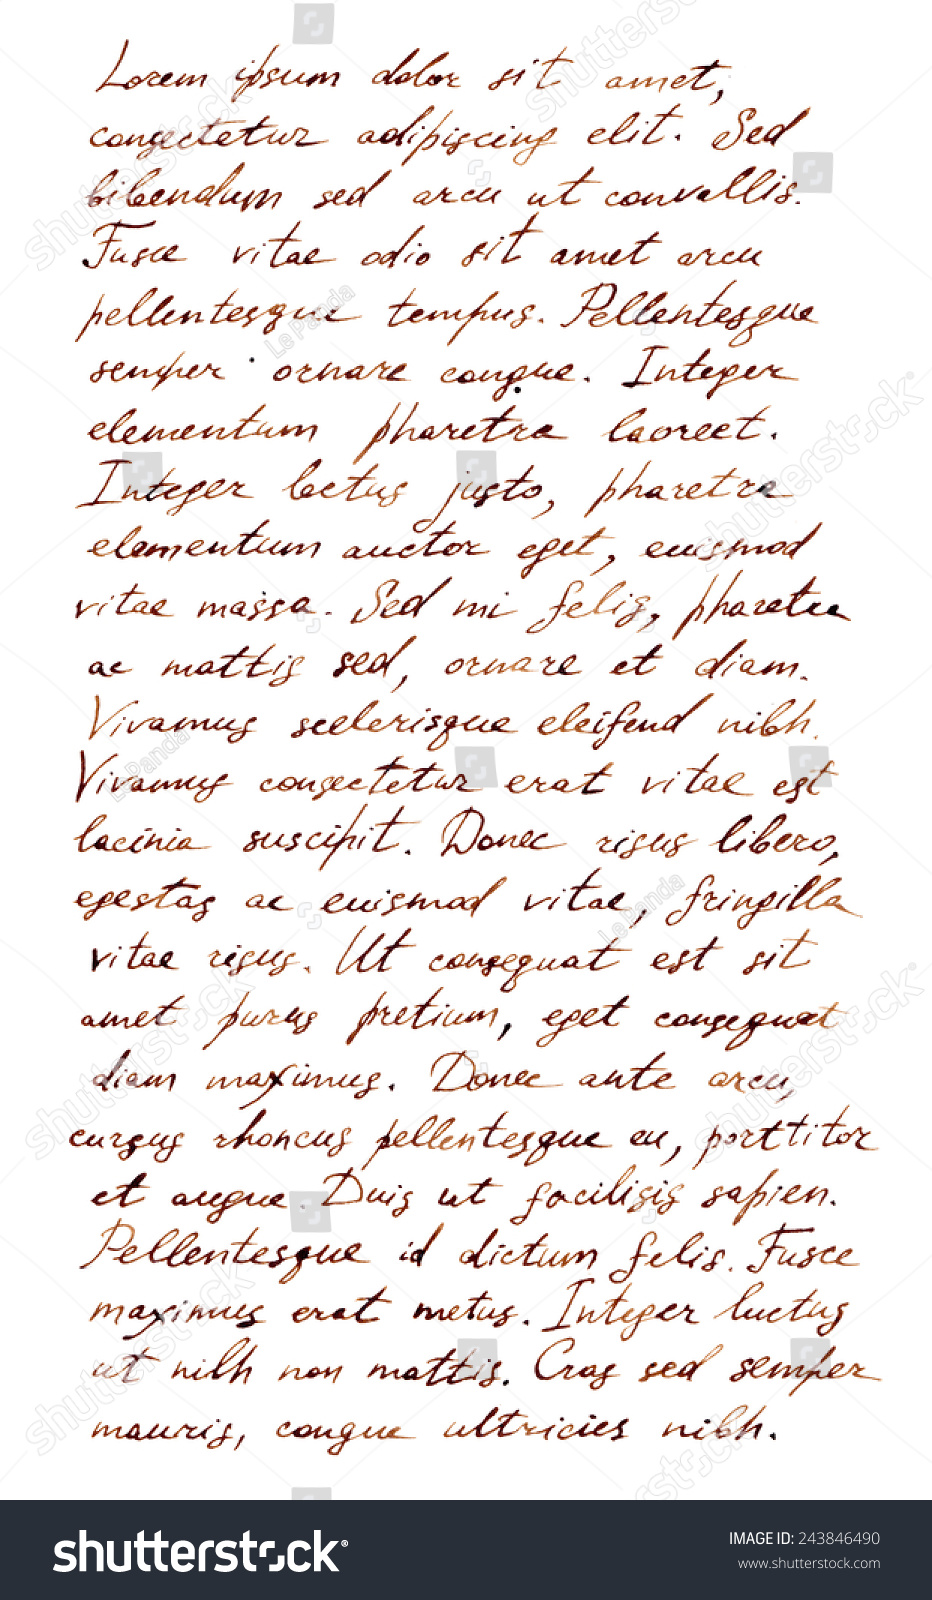 Royalty Free Stock Illustration of Hand Written Letter Latin Text